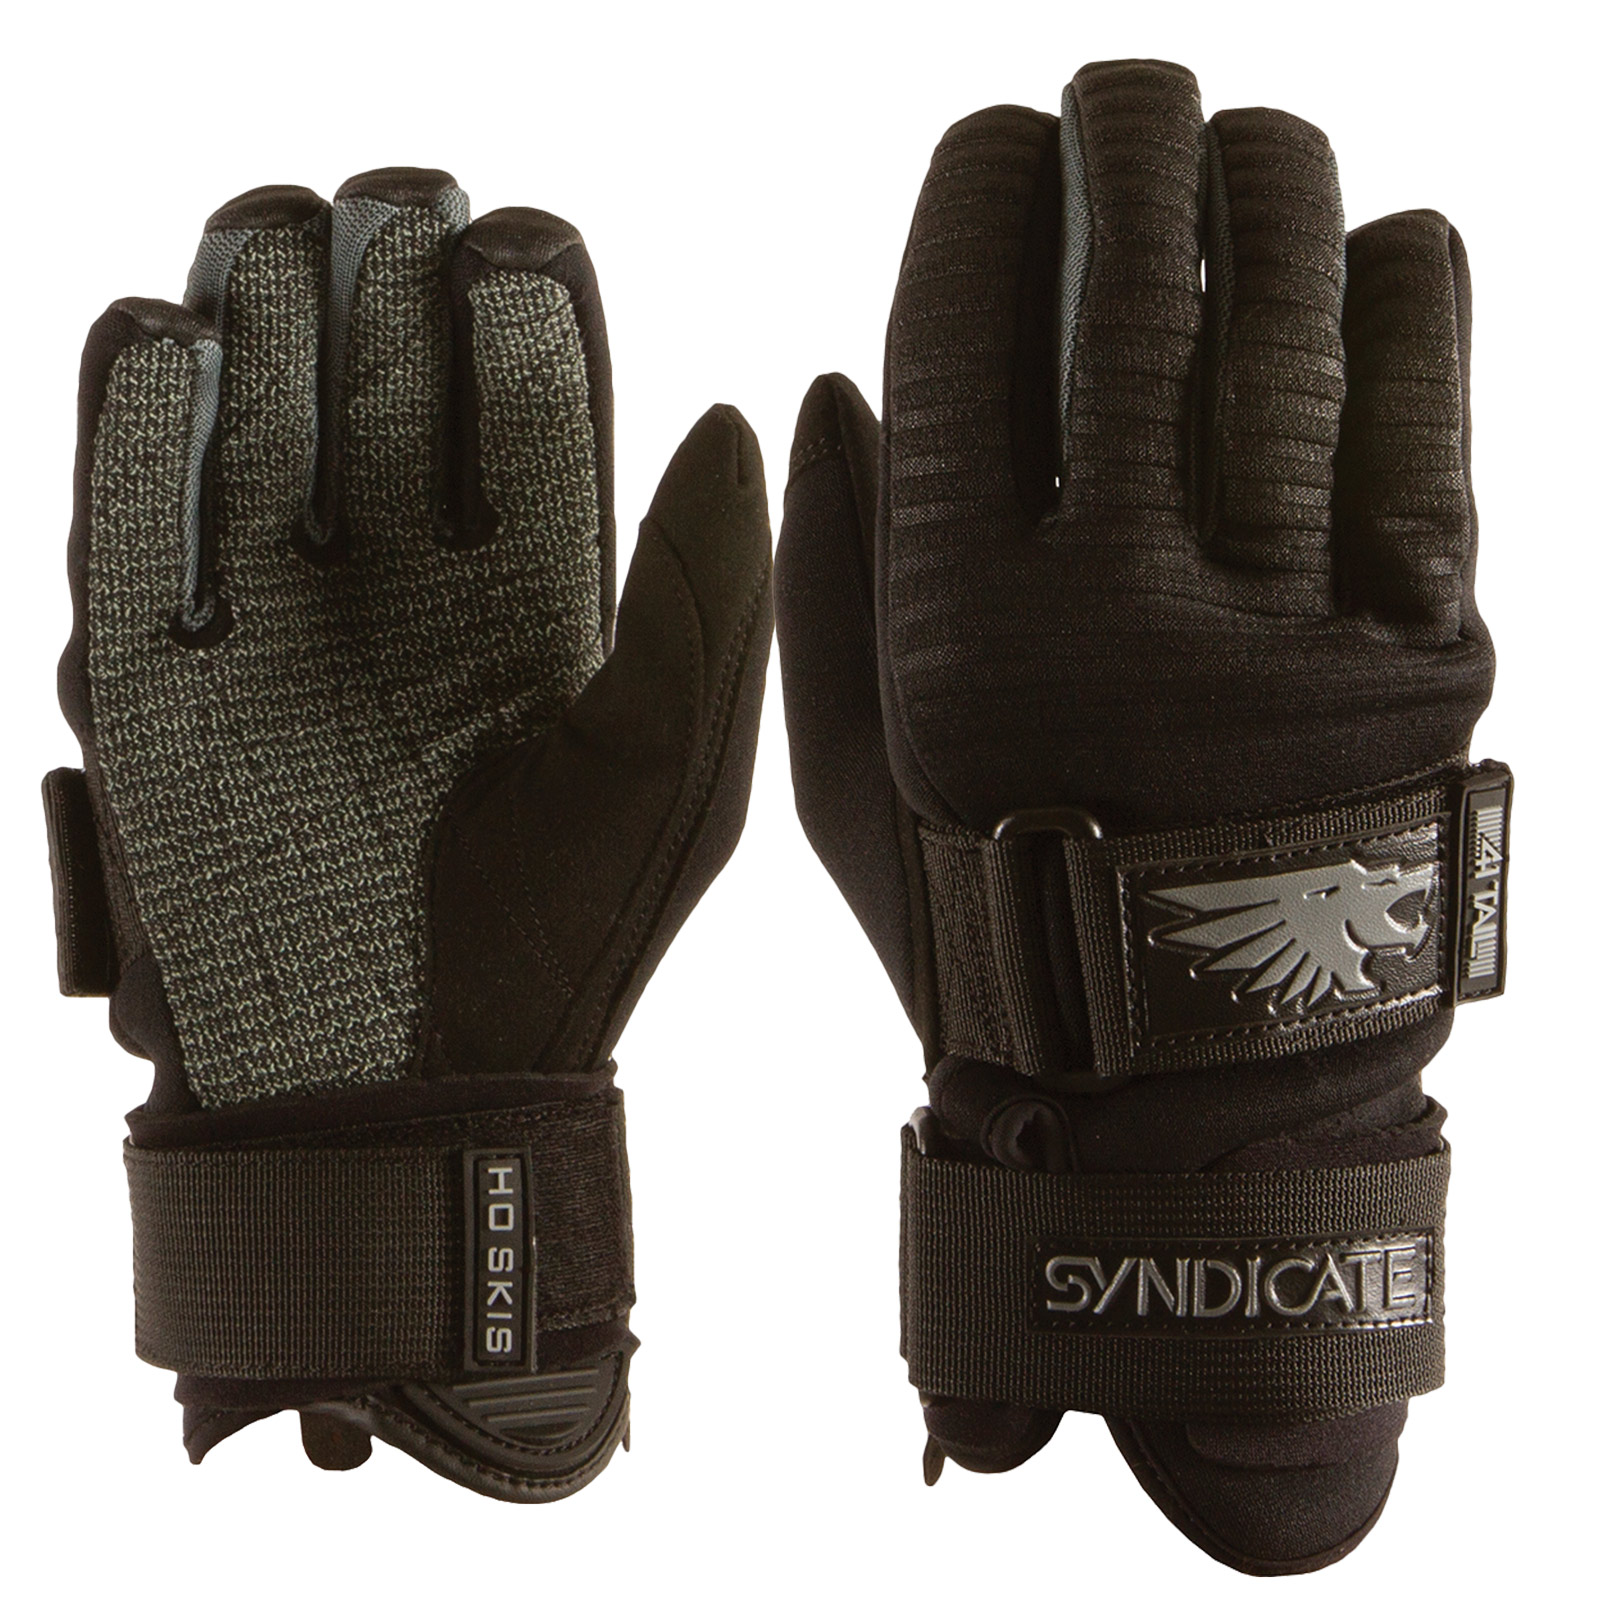 SYNDICATE 41 TAIL GLOVE HO SPORTS 2018